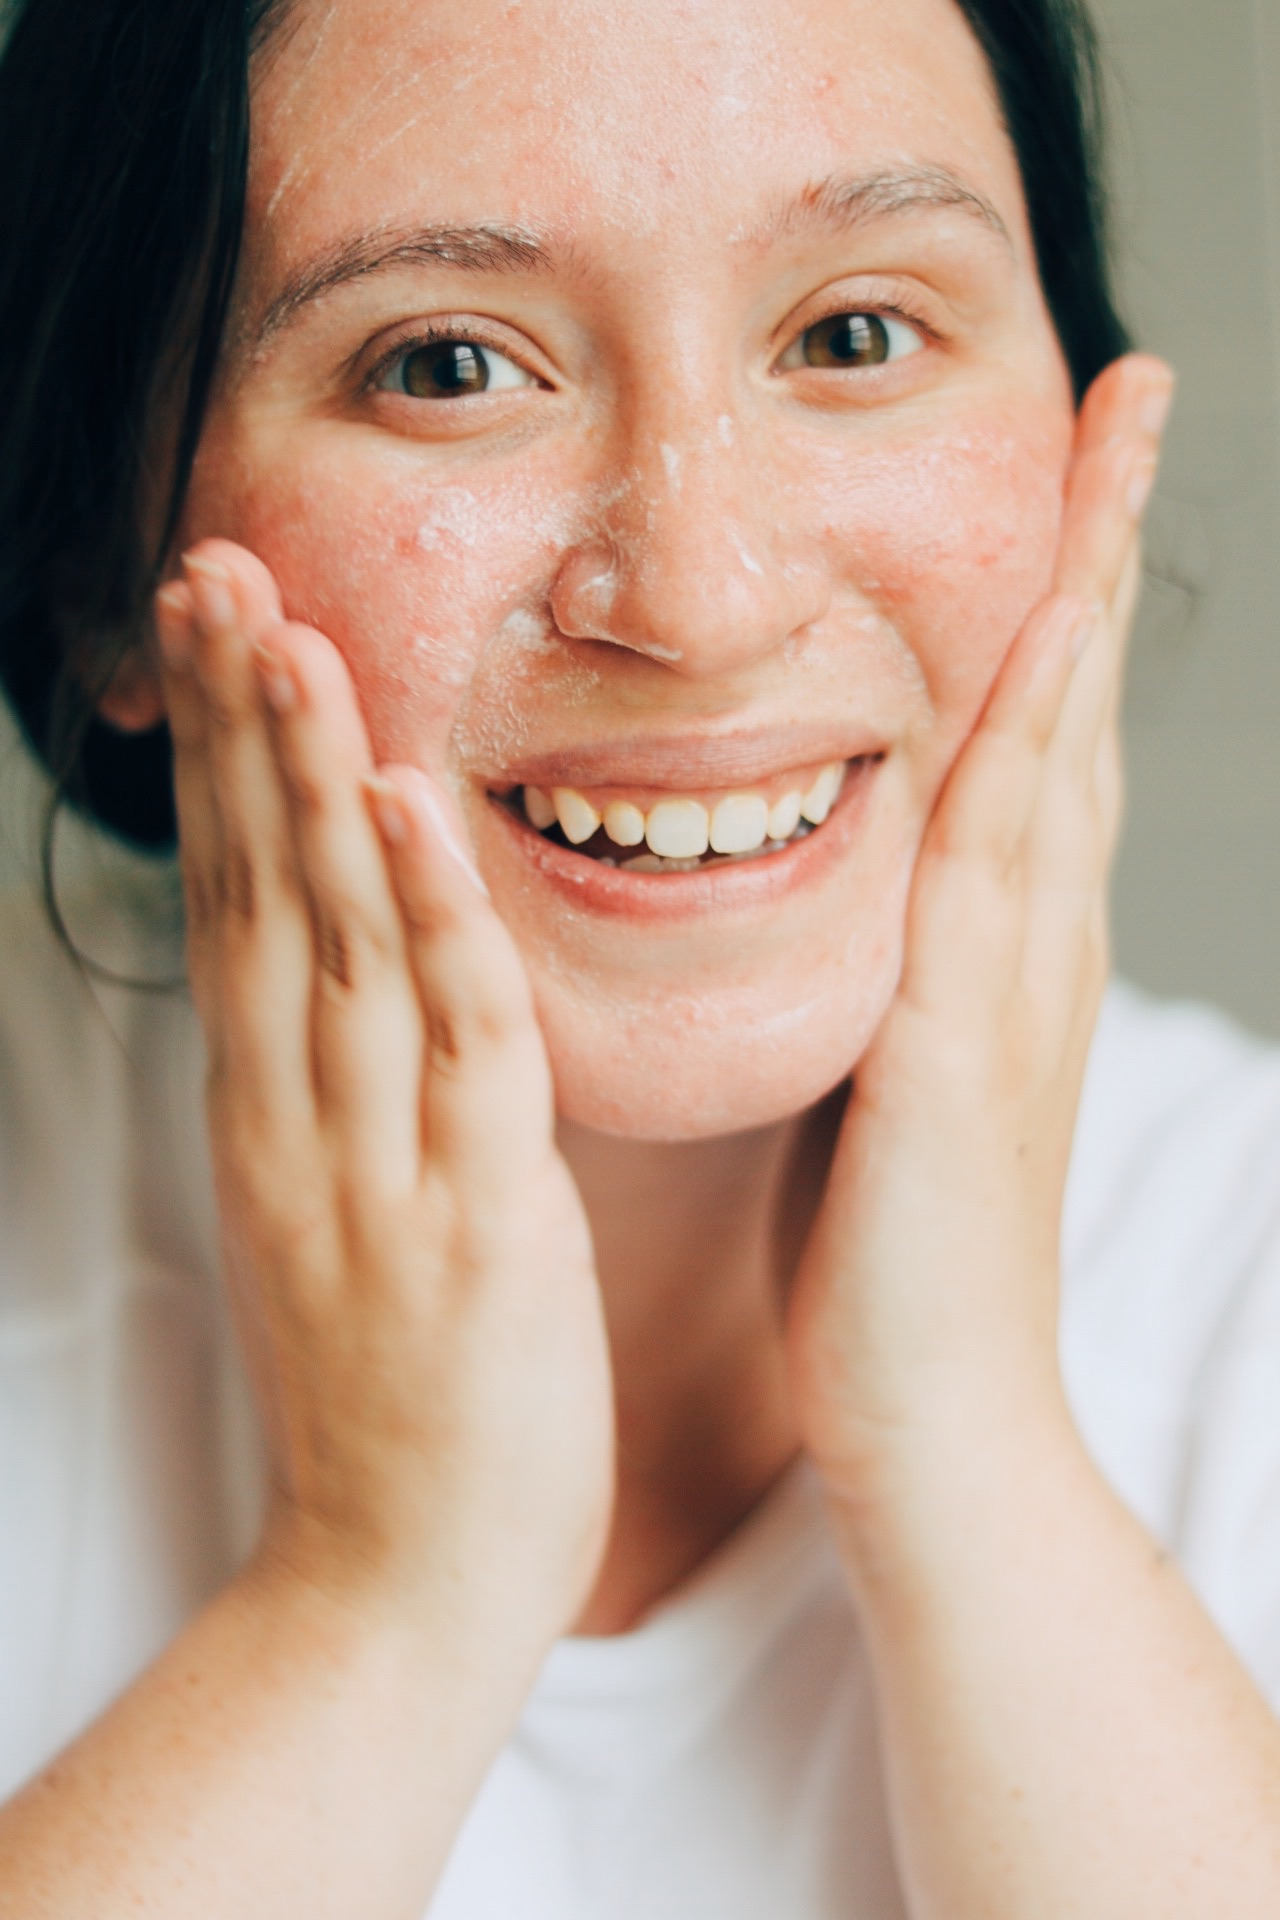 The Easiest, 3 Step Skin Care Routine for Women in their 20s